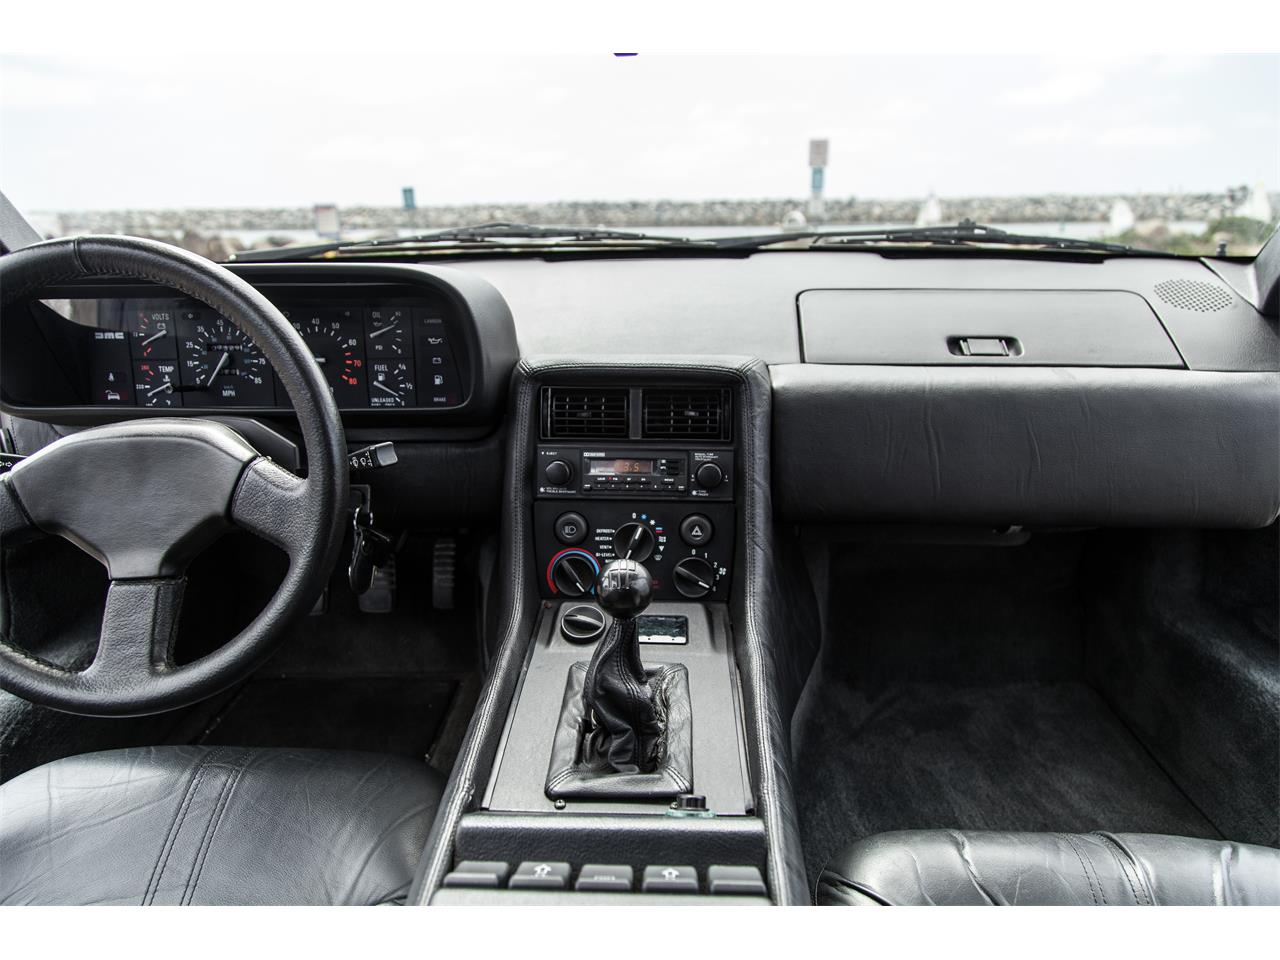 Large Picture of '81 DeLorean DMC-12 Offered by a Private Seller - P3AG